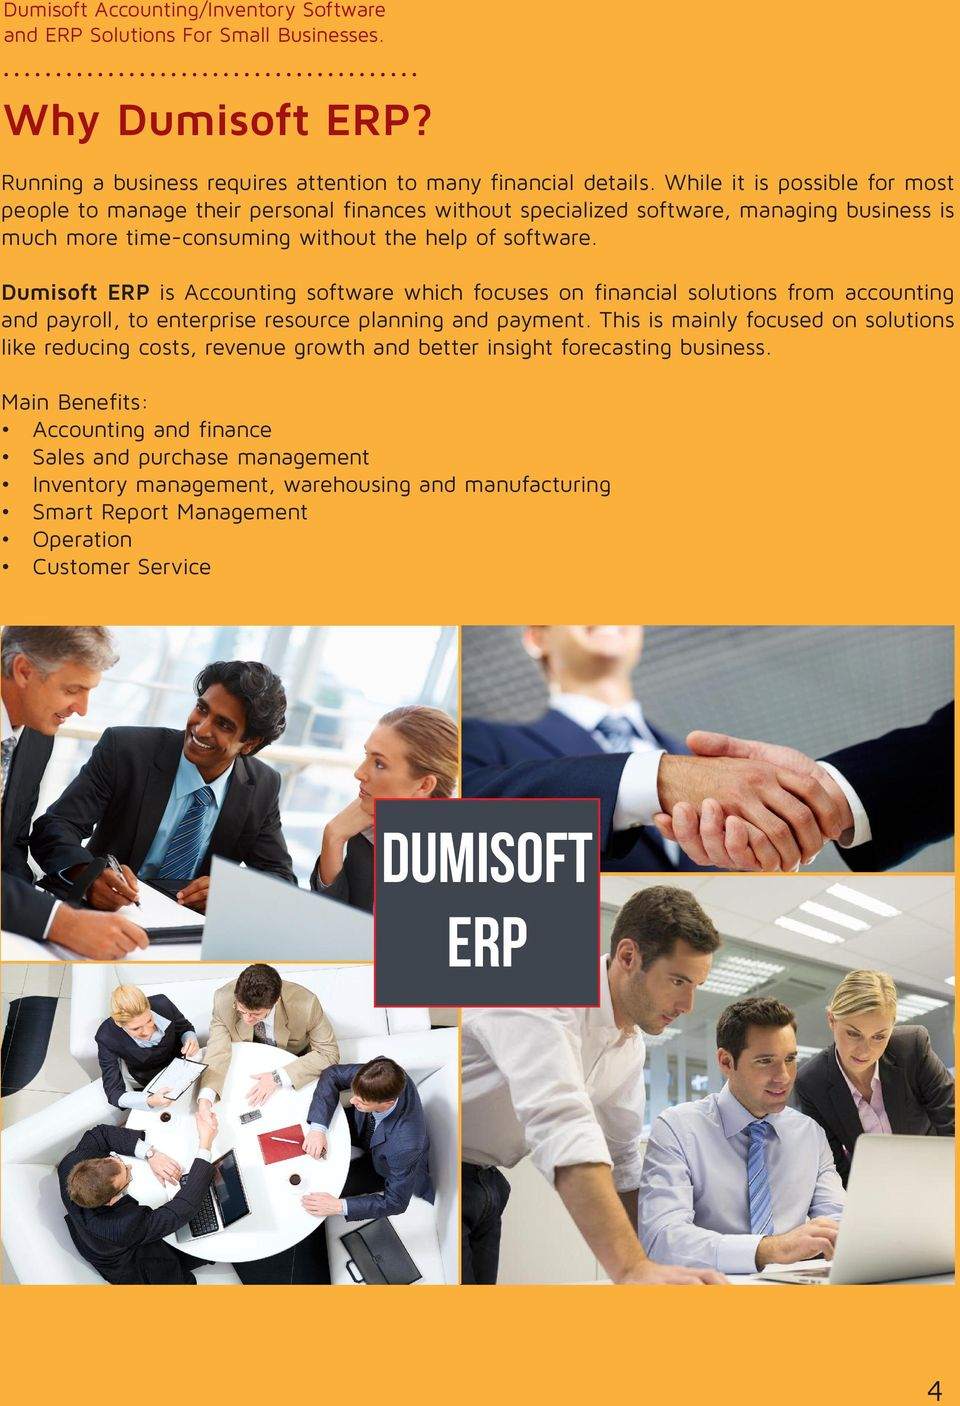 Dumisoft ERP is Accounting software which focuses on financial solutions from accounting and payroll, to enterprise resource planning and payment.